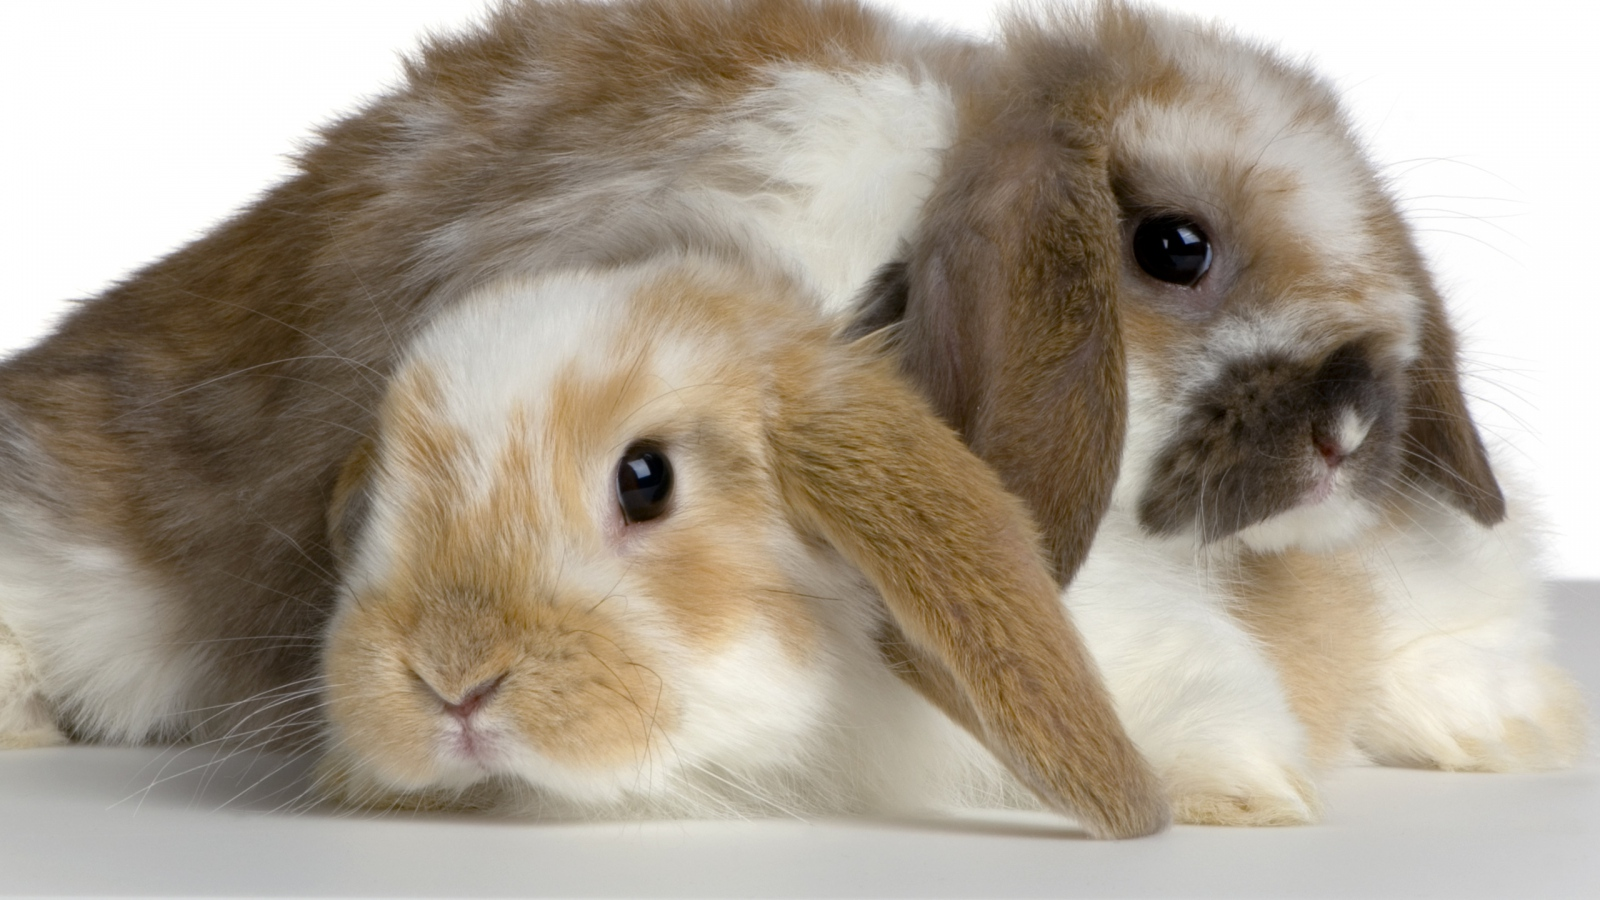 Rabbits Images Sweet Bunnies HD Wallpaper And Background Photos